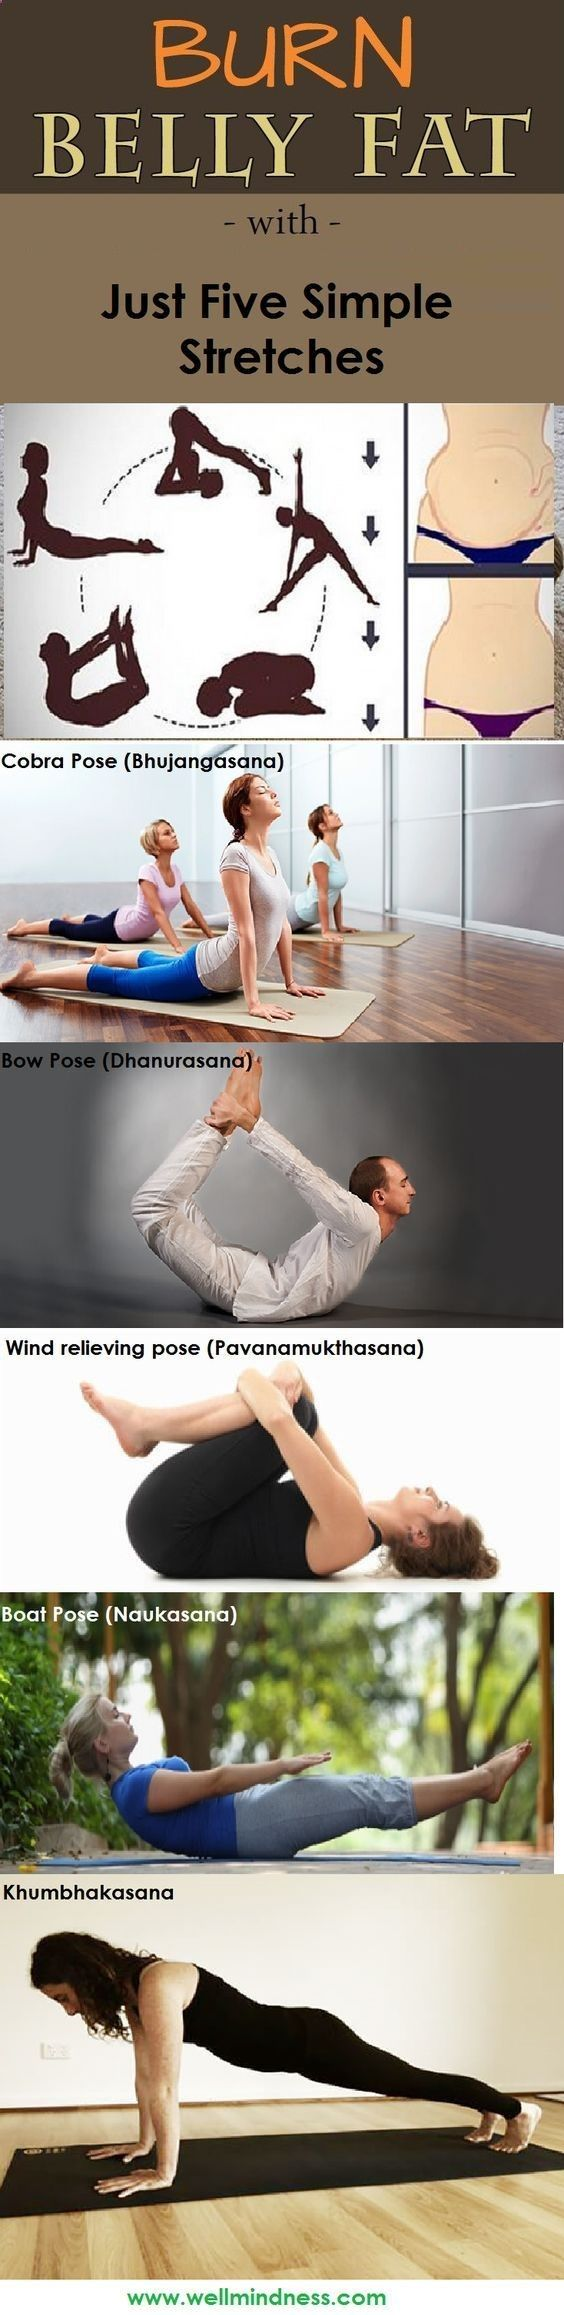 how to lose fat fast for men, fastest diet to lose weight, best cardio for weight loss - Nobody likes to have a big belly, but it is very easy to get, especially if you don't have time or money to exercise in a gym. But with these 5 yoga asanas, which you